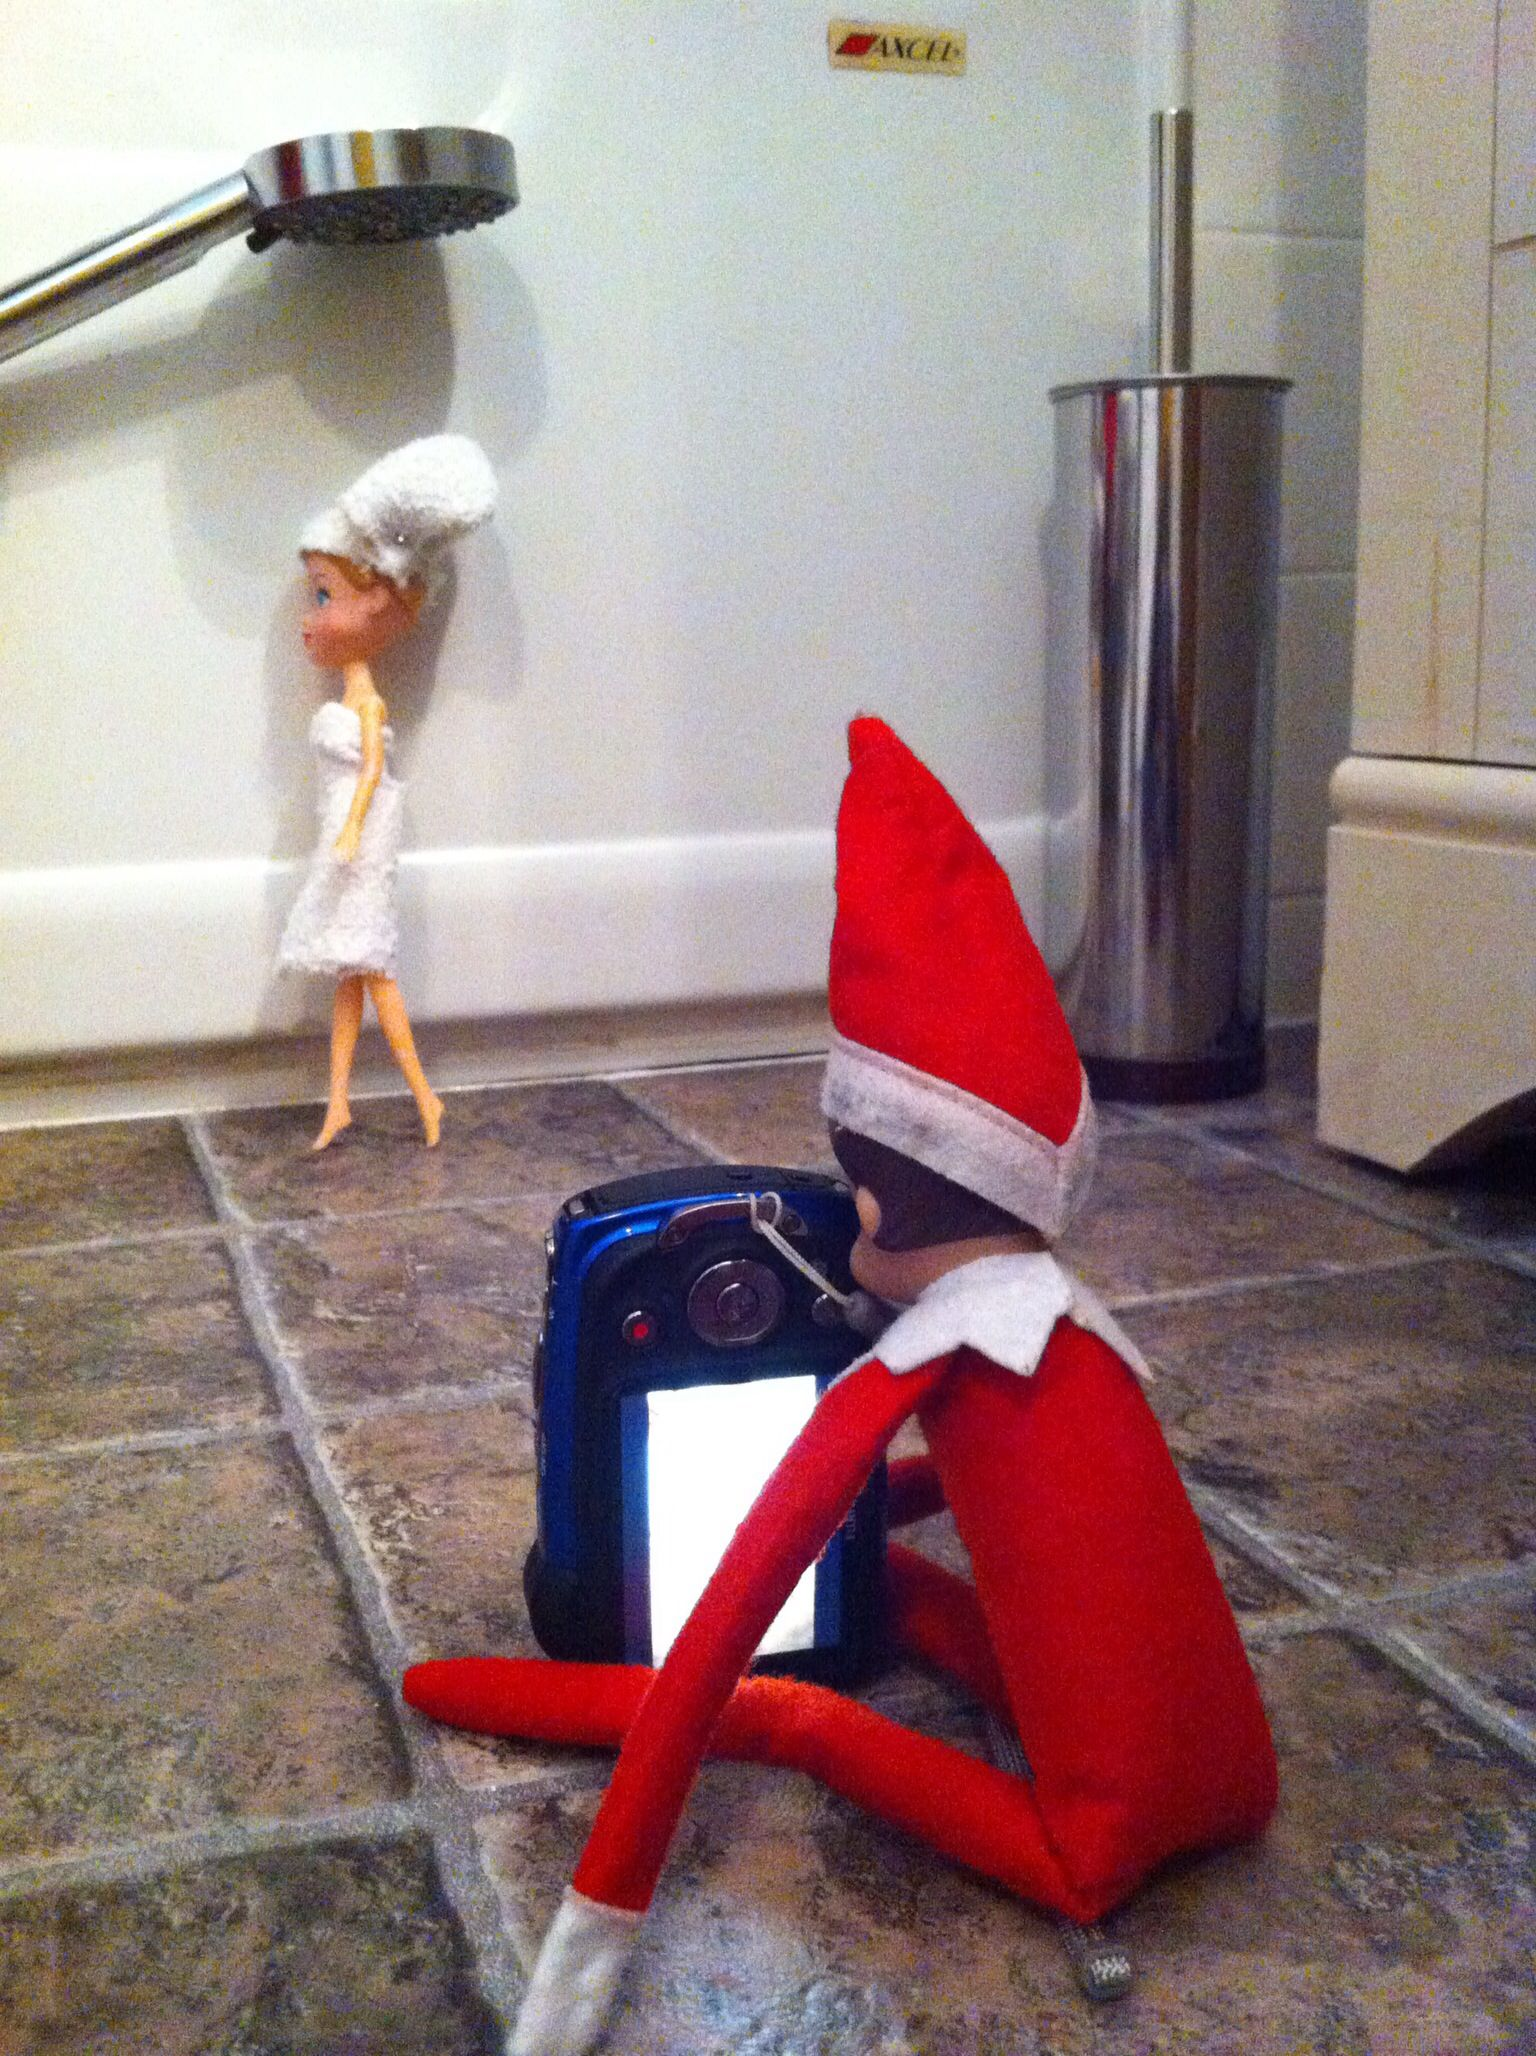 Naughty elf on the shelf | Naughty Elf on the Shelf | Pinterest